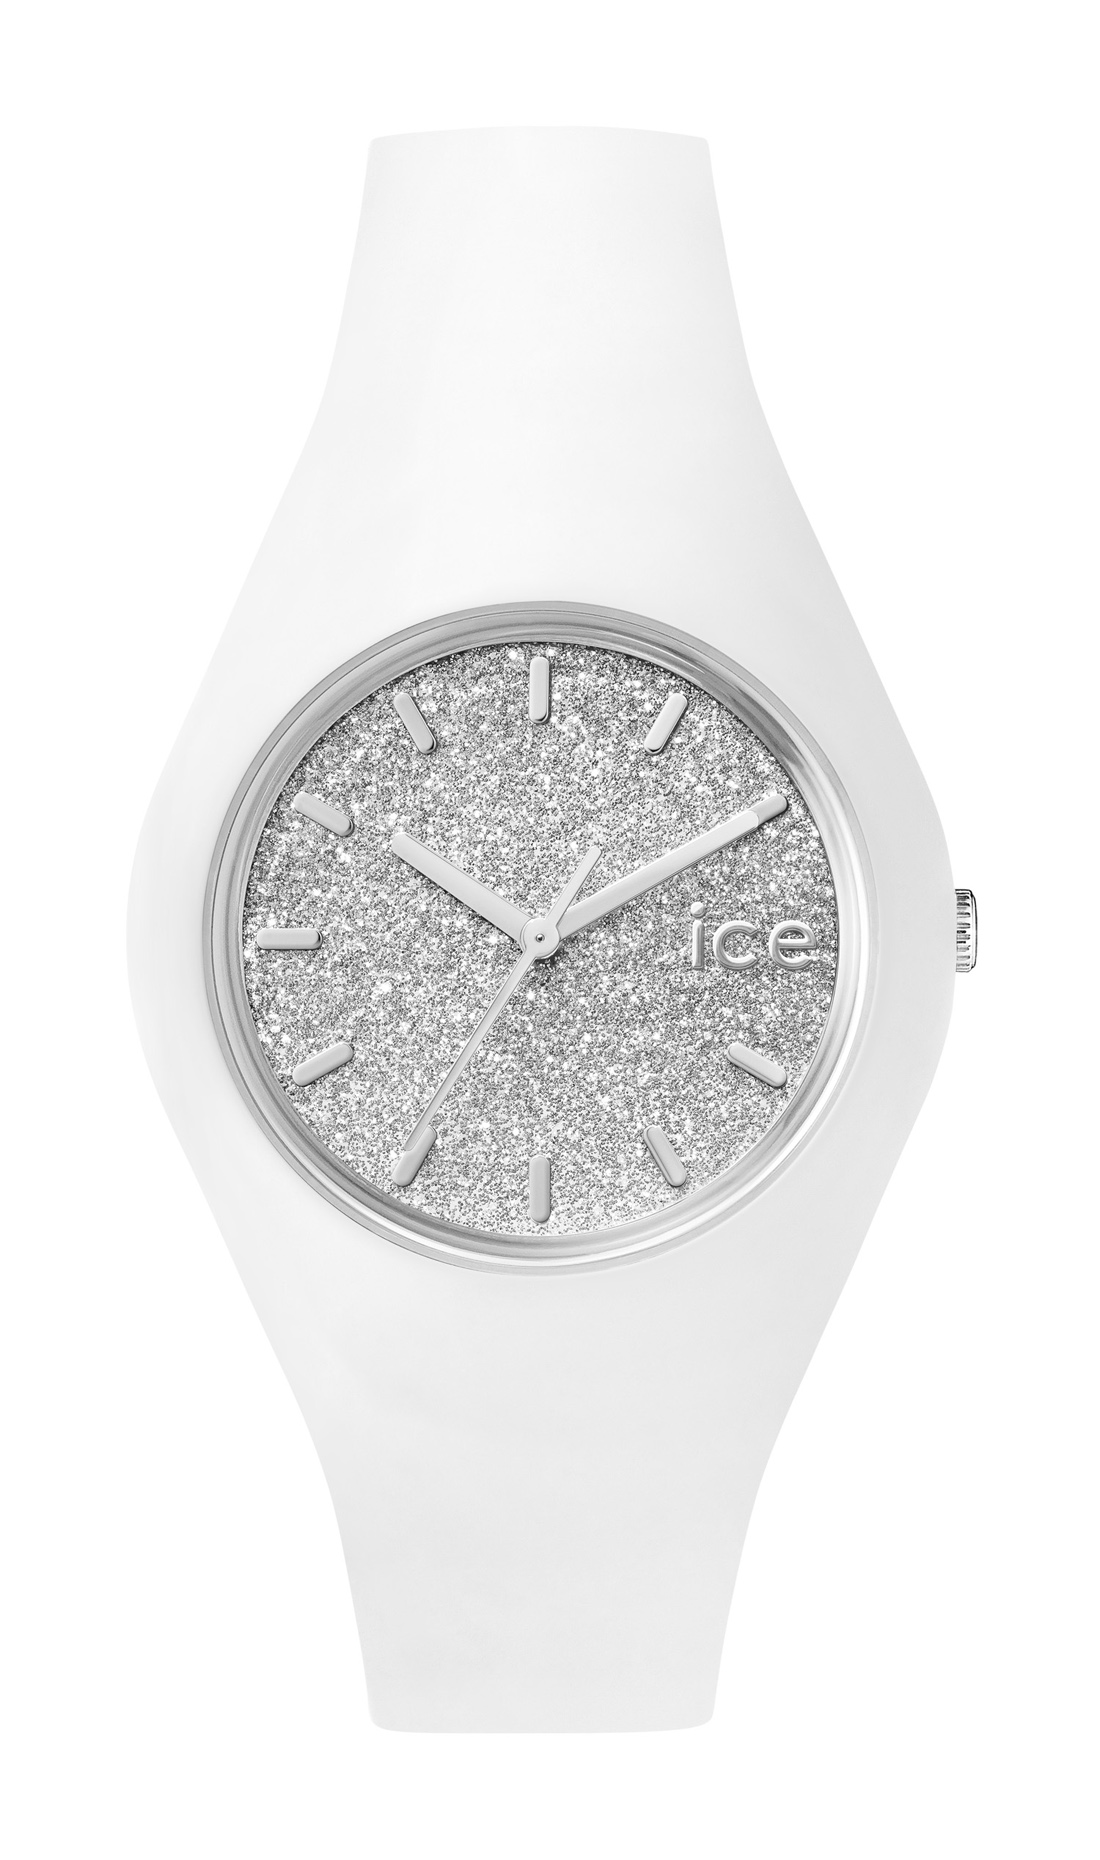 Ice-Watch_ICE Glitter_White-Silver_99Euro